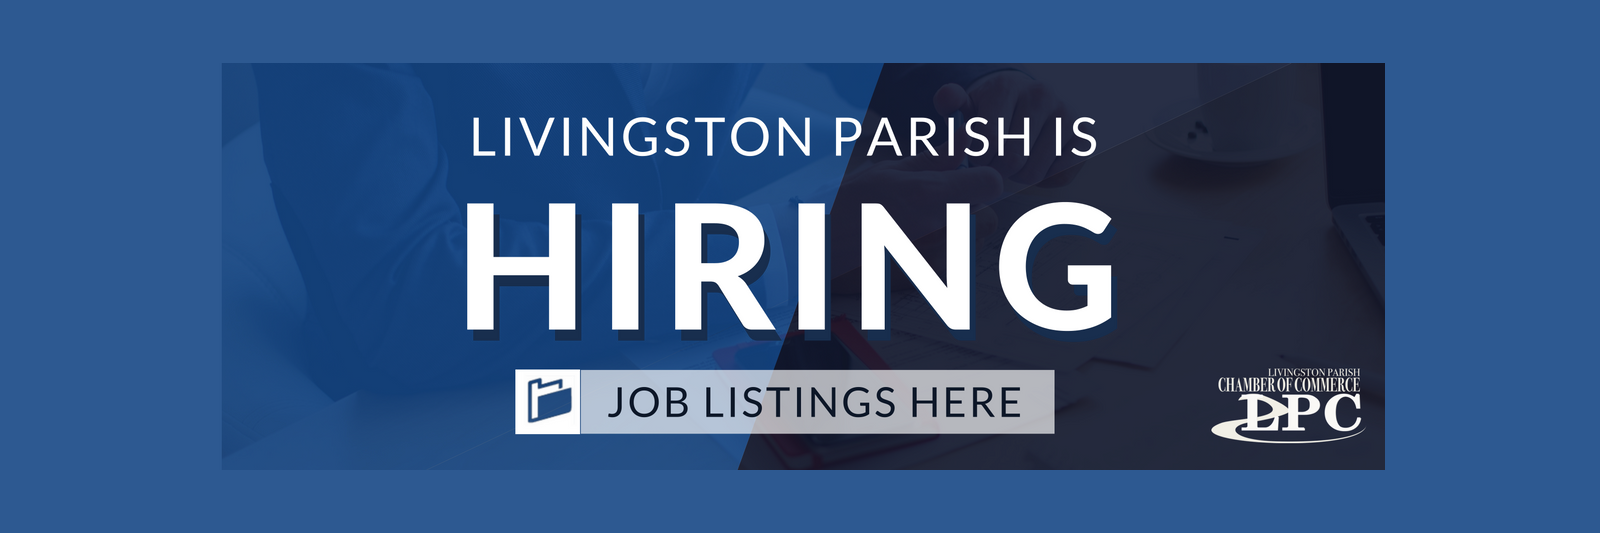 Livingston Parish is Hiring